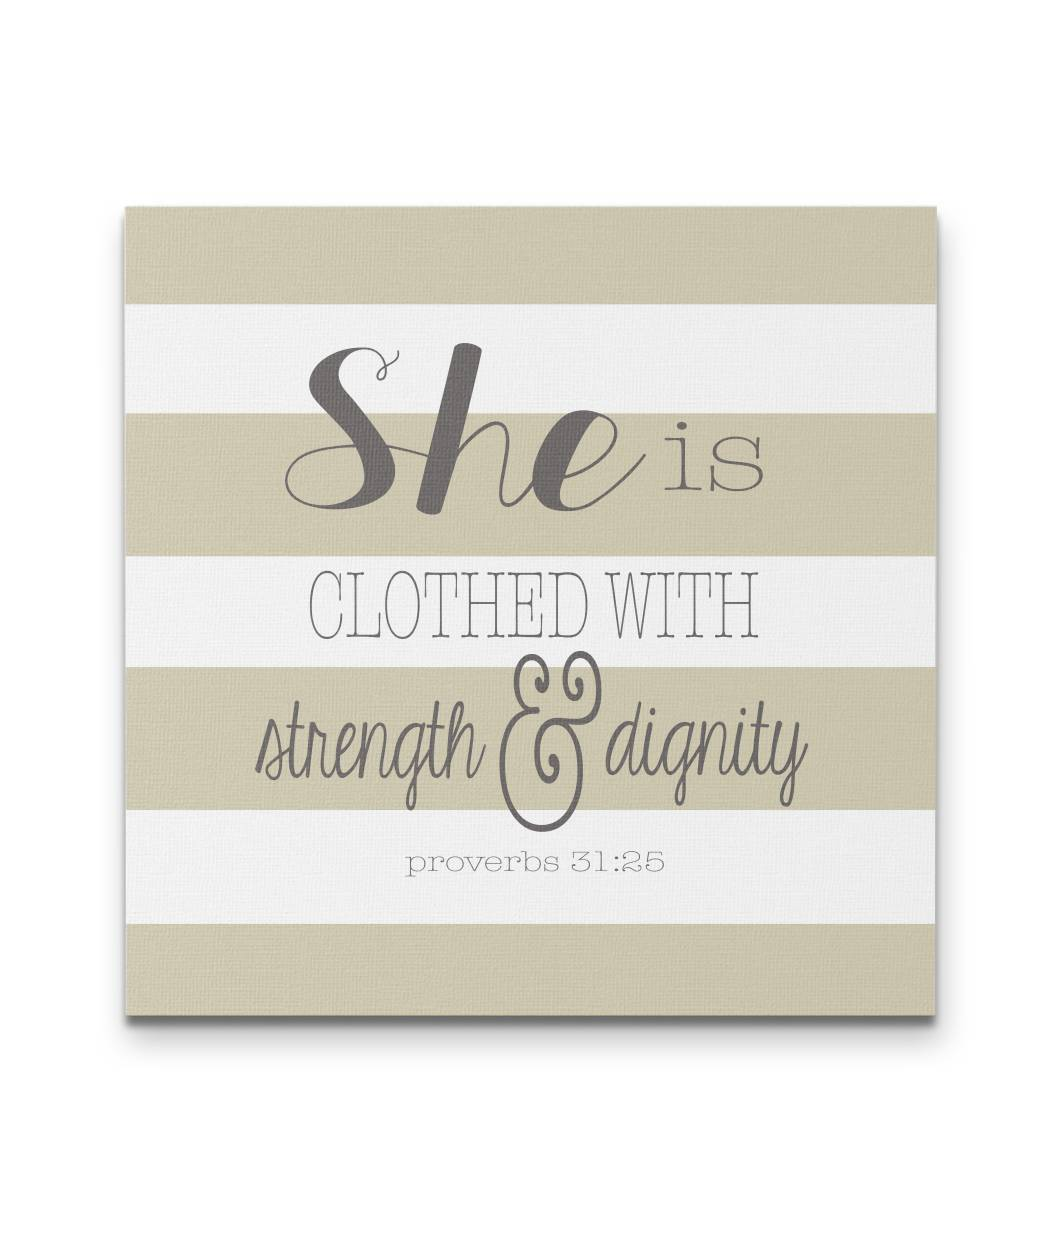 She is Clothed with Strength & Dignity -Square Canvas in 3 sizes